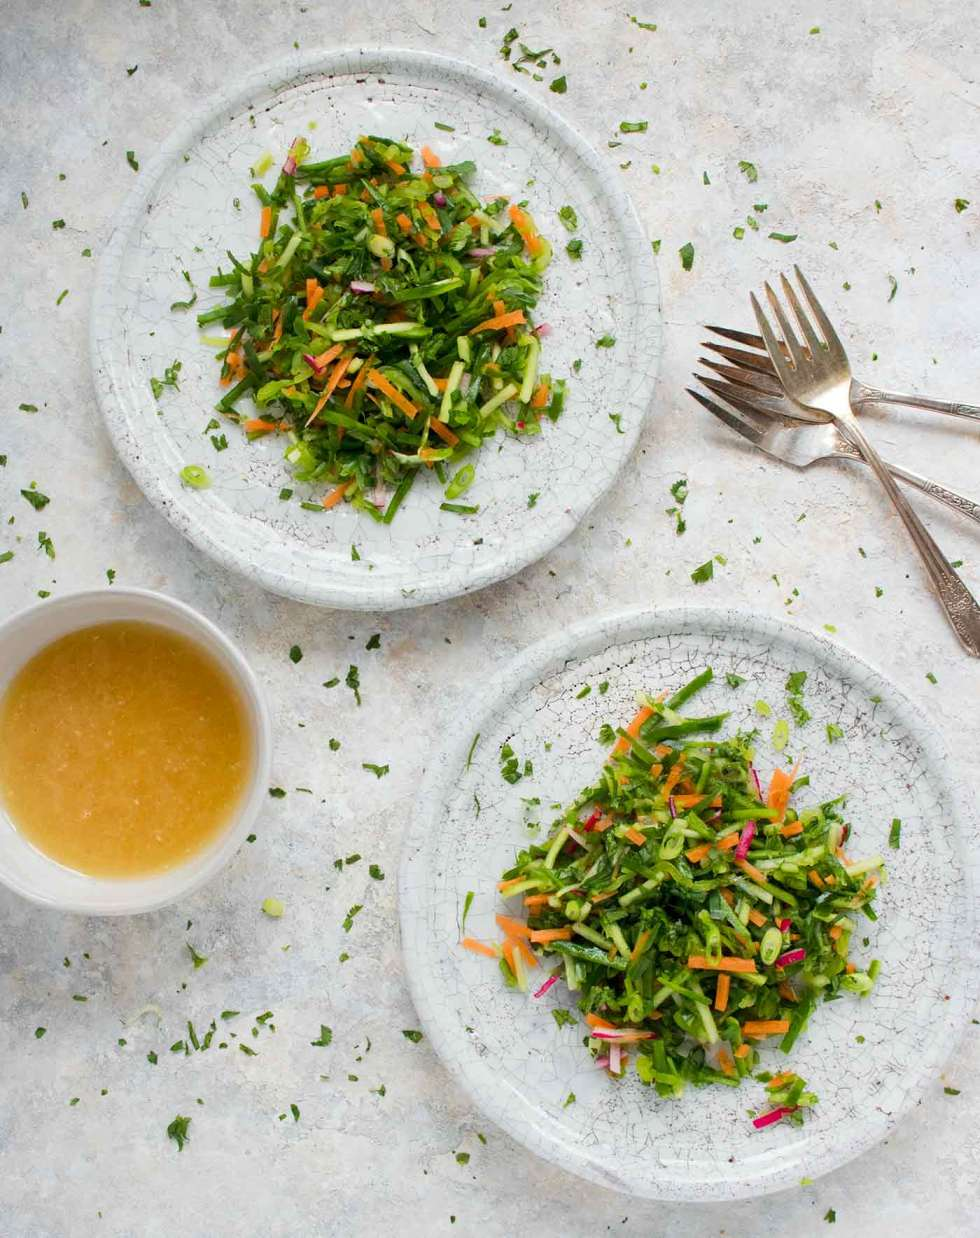 Two plates of cucumber slaw with Asian dressing on the side